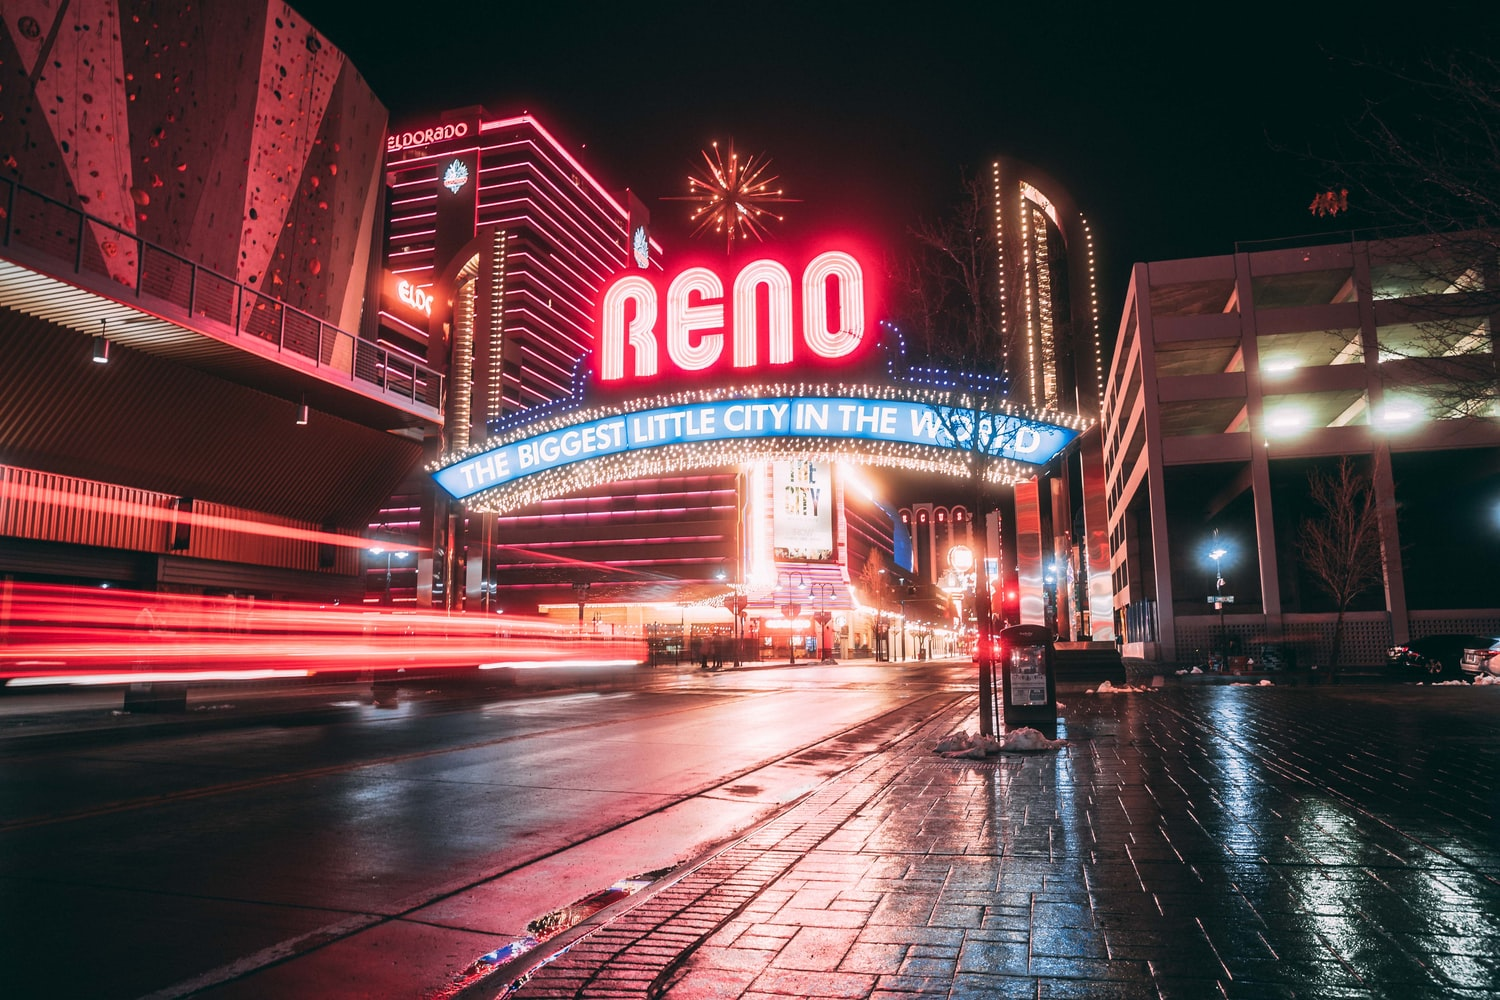 The Best Areas to Stay in Reno, NV